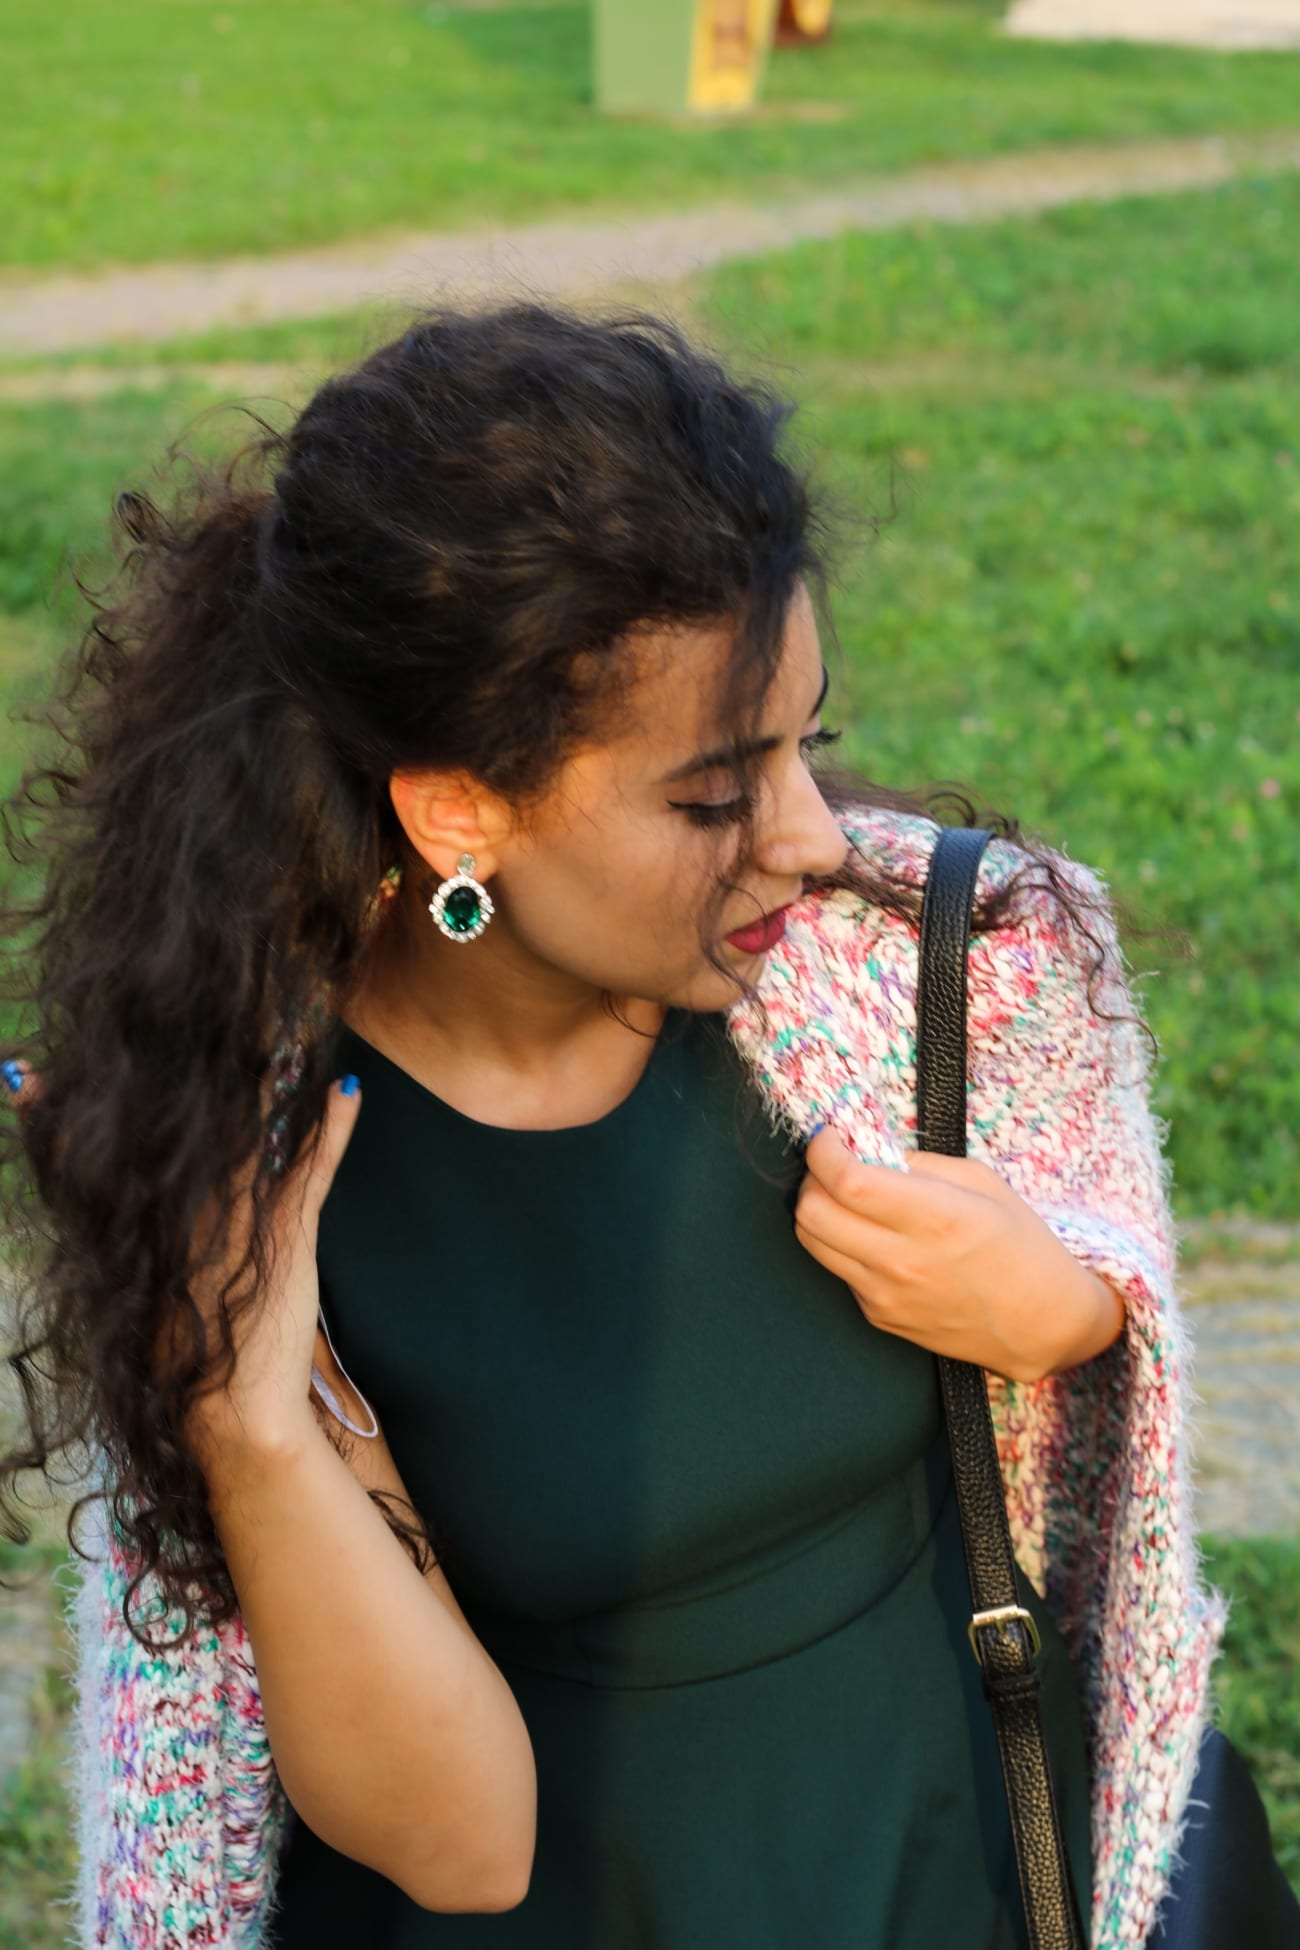 reserved-timis-roxi-rose-fashion-blogger-romania-shopping-city-timisoara-concurs-back-to-office-outfit-transitional-idei-news-stiri-25